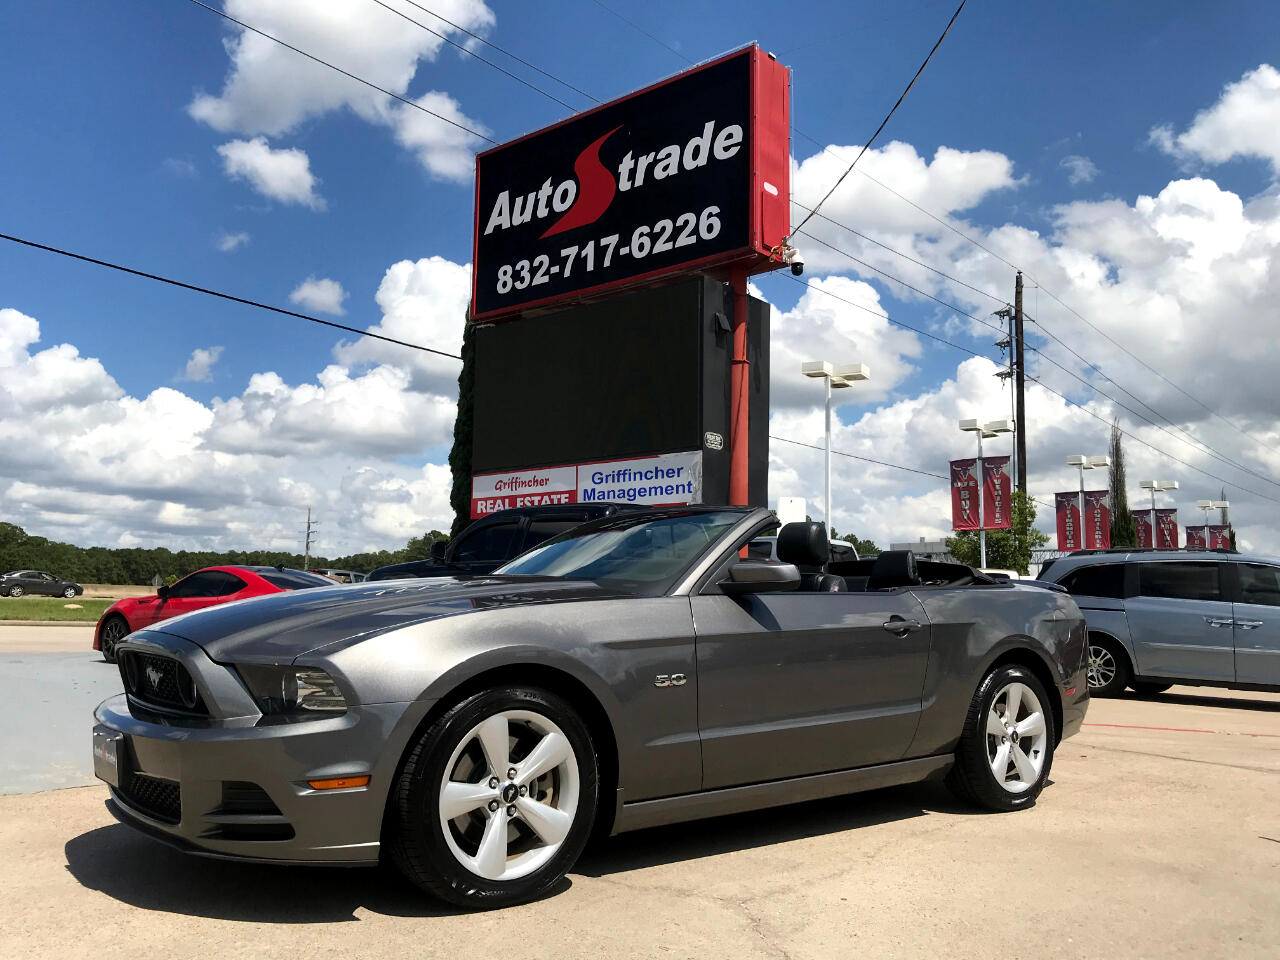 Ford Mustang 2dr Conv GT Premium 2013